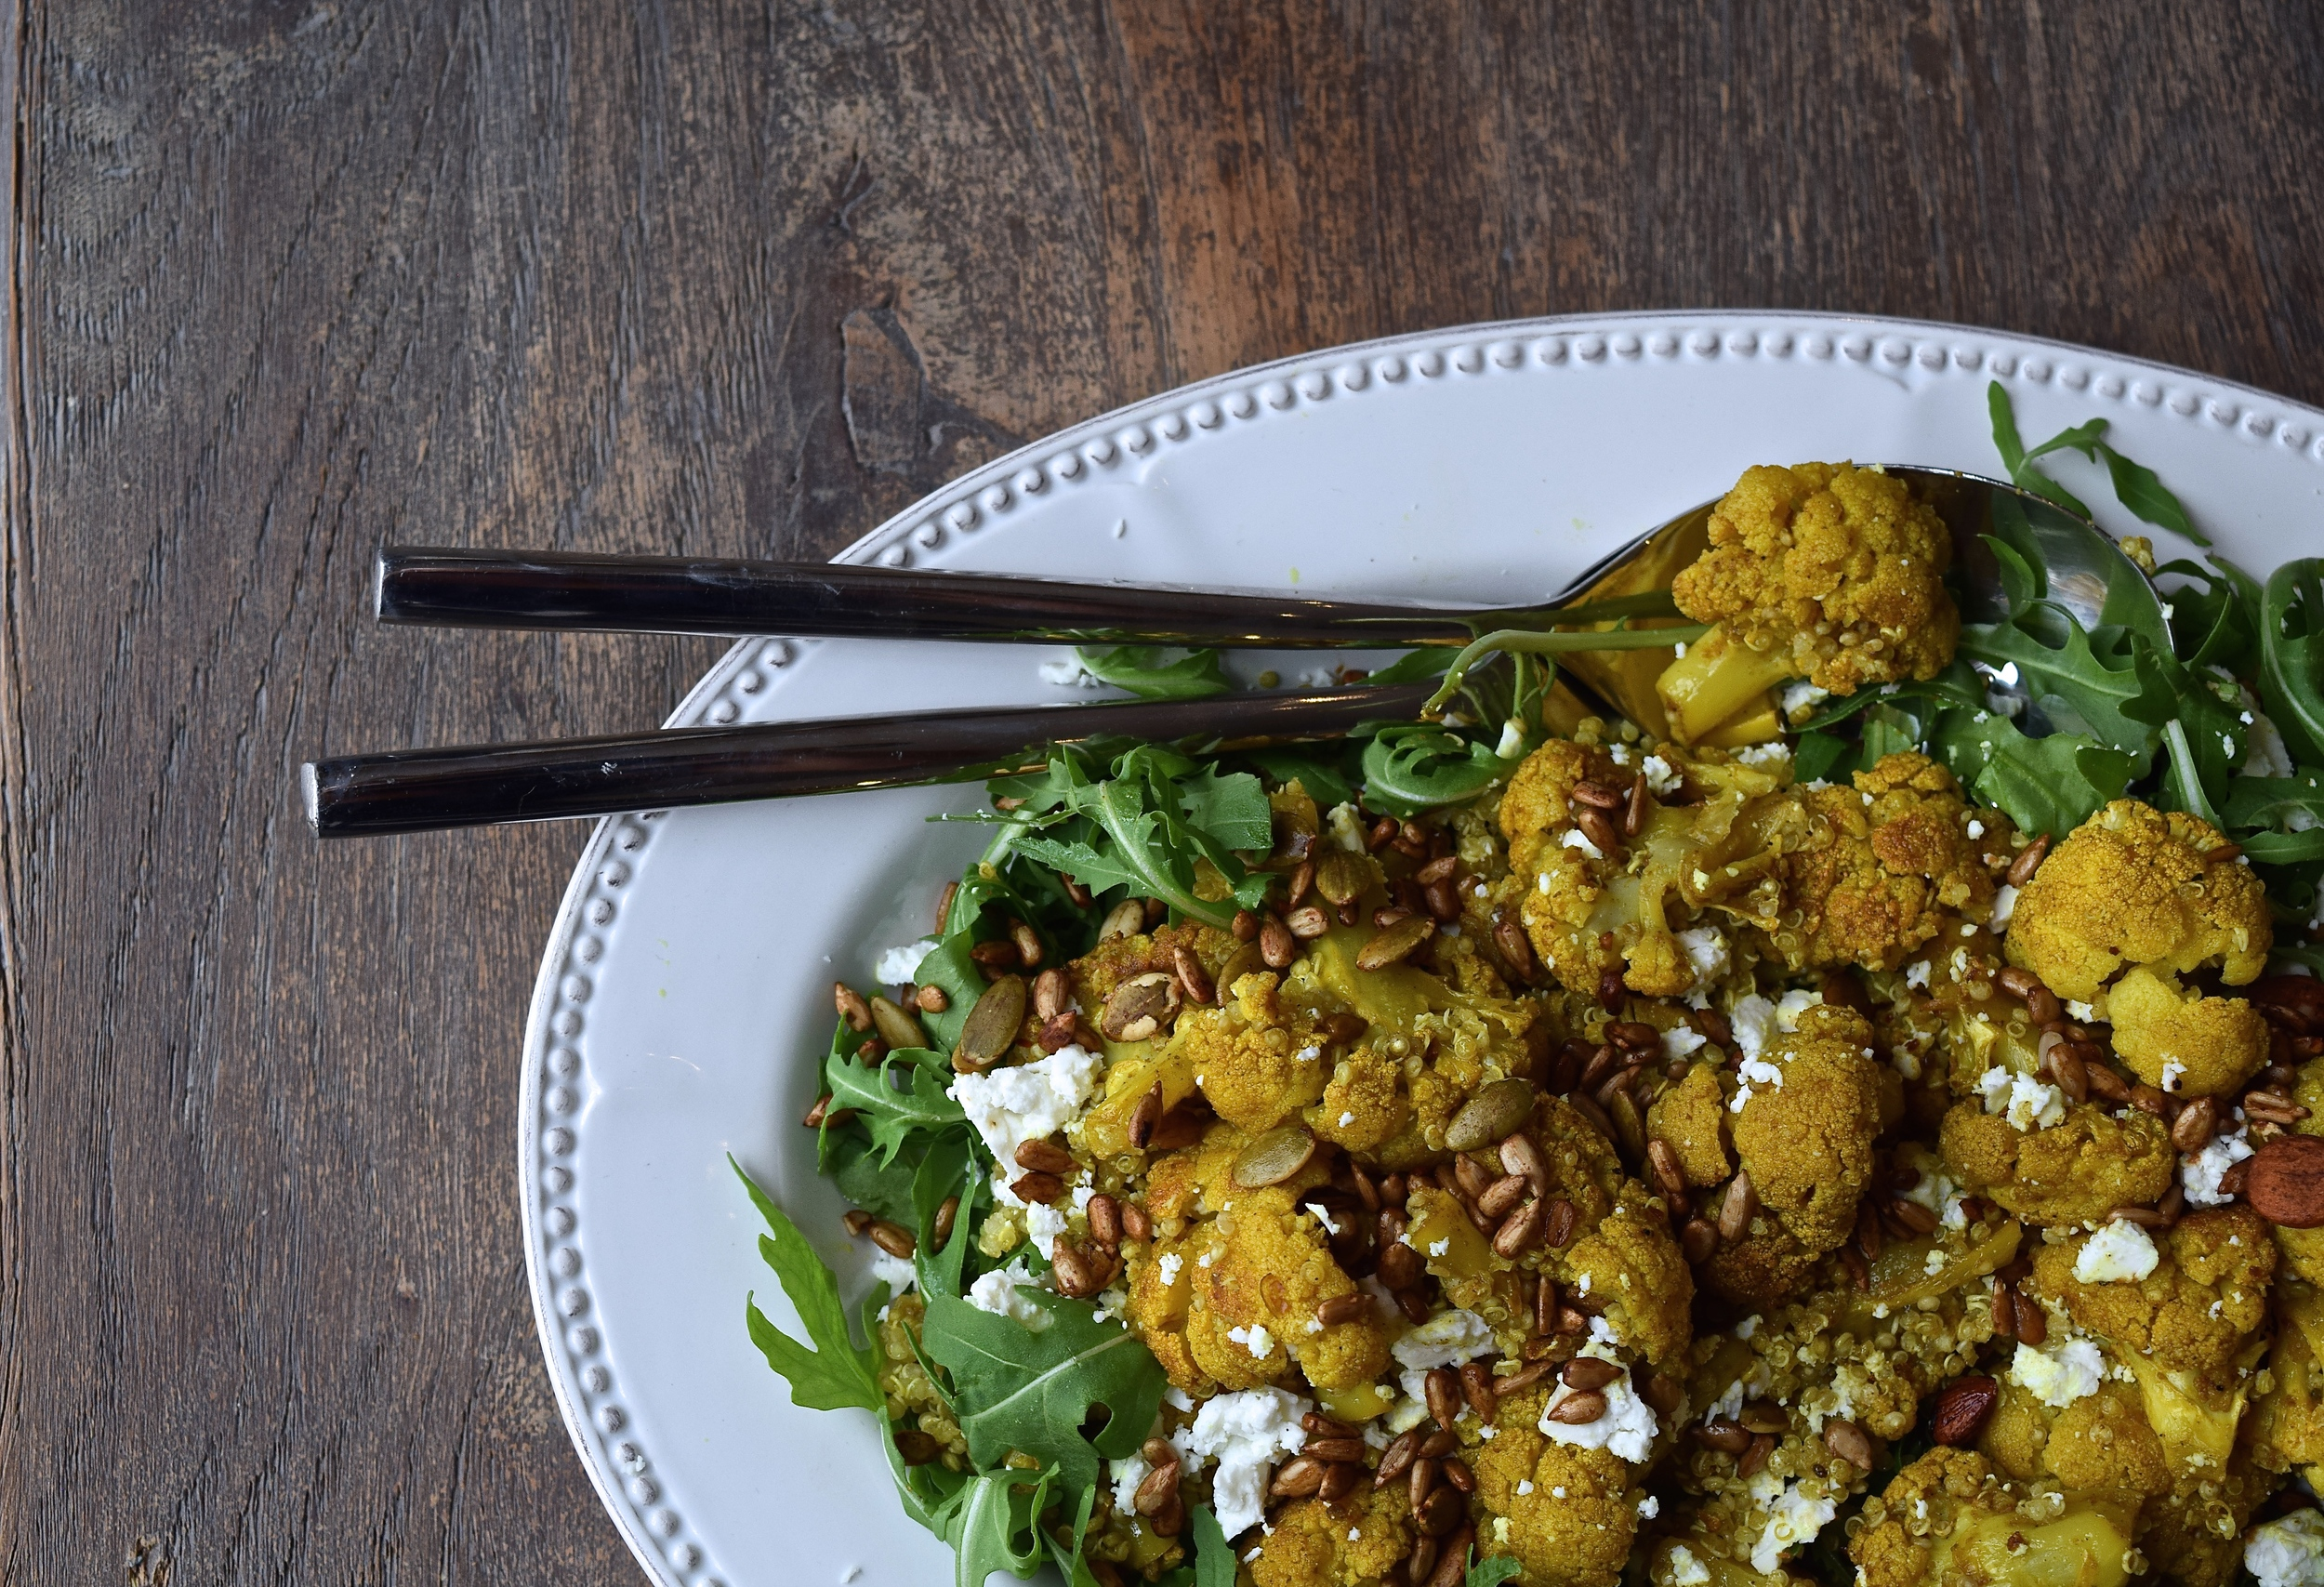 http://blog.wearetribe.co/post/124736046086/roasted-cauliflower-and-quinoa-salad-with-tribe